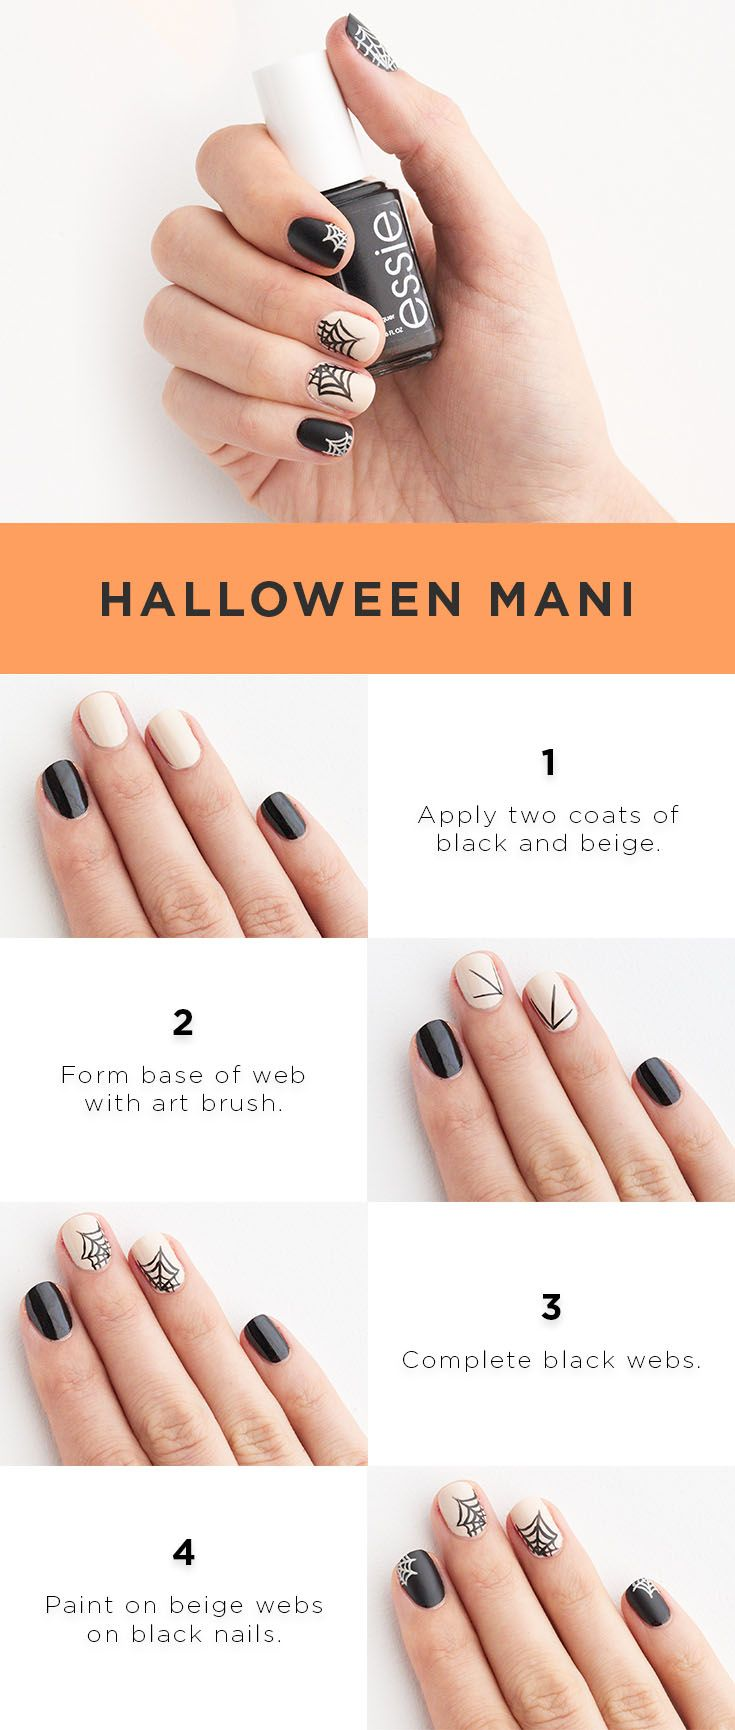 Make This Boo Tiful Manicure Yours In Four Easy Steps Apply Two Coats Each Of Essie Licorice And Bliss In This Beige Nails Fancy Nails Holiday Nail Designs